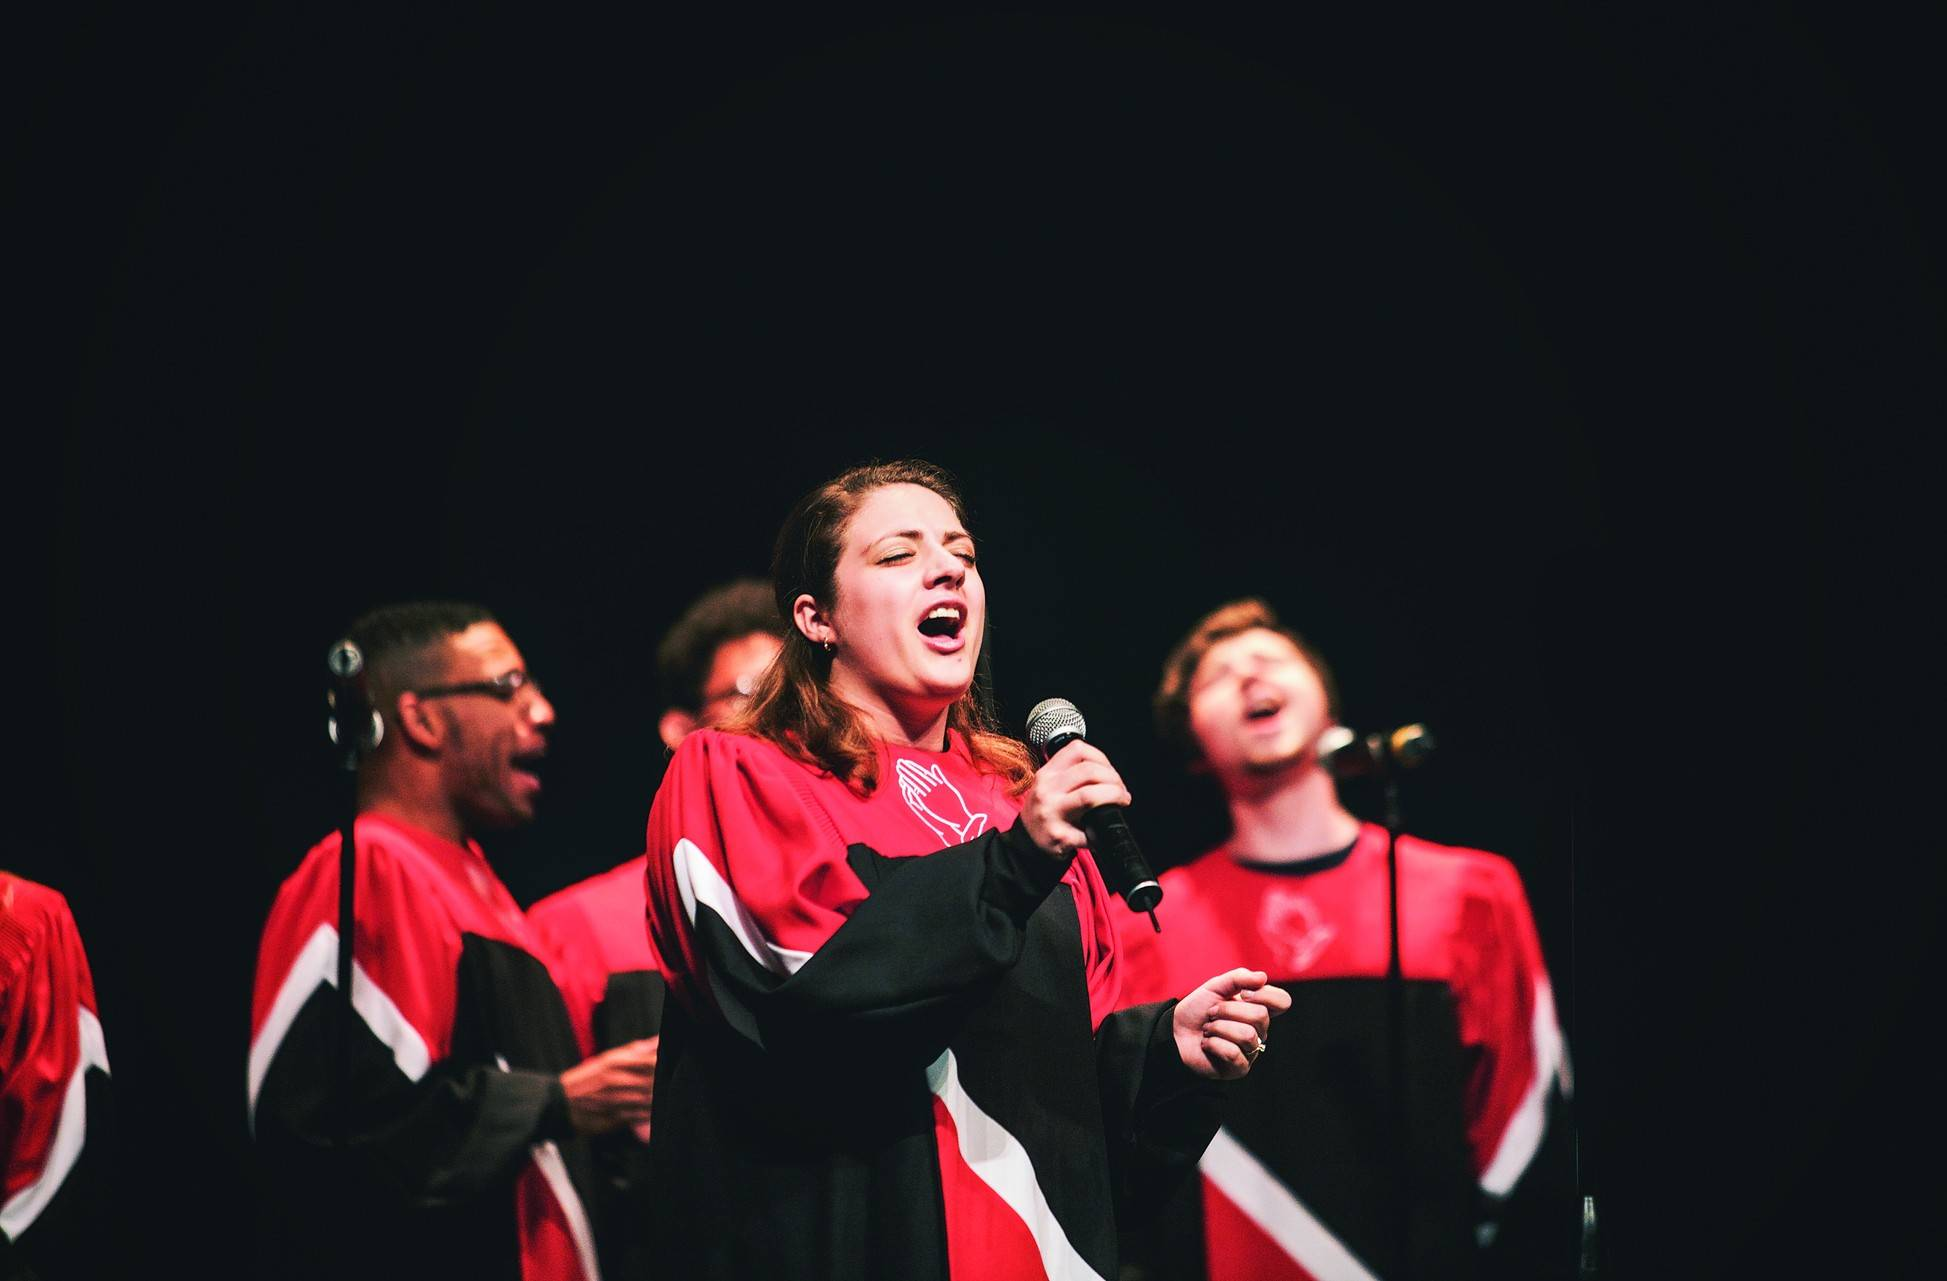 North Central College's Voices of Praise gospel choir will be among the groups performing Saturday at the Gospel Extravaganza.